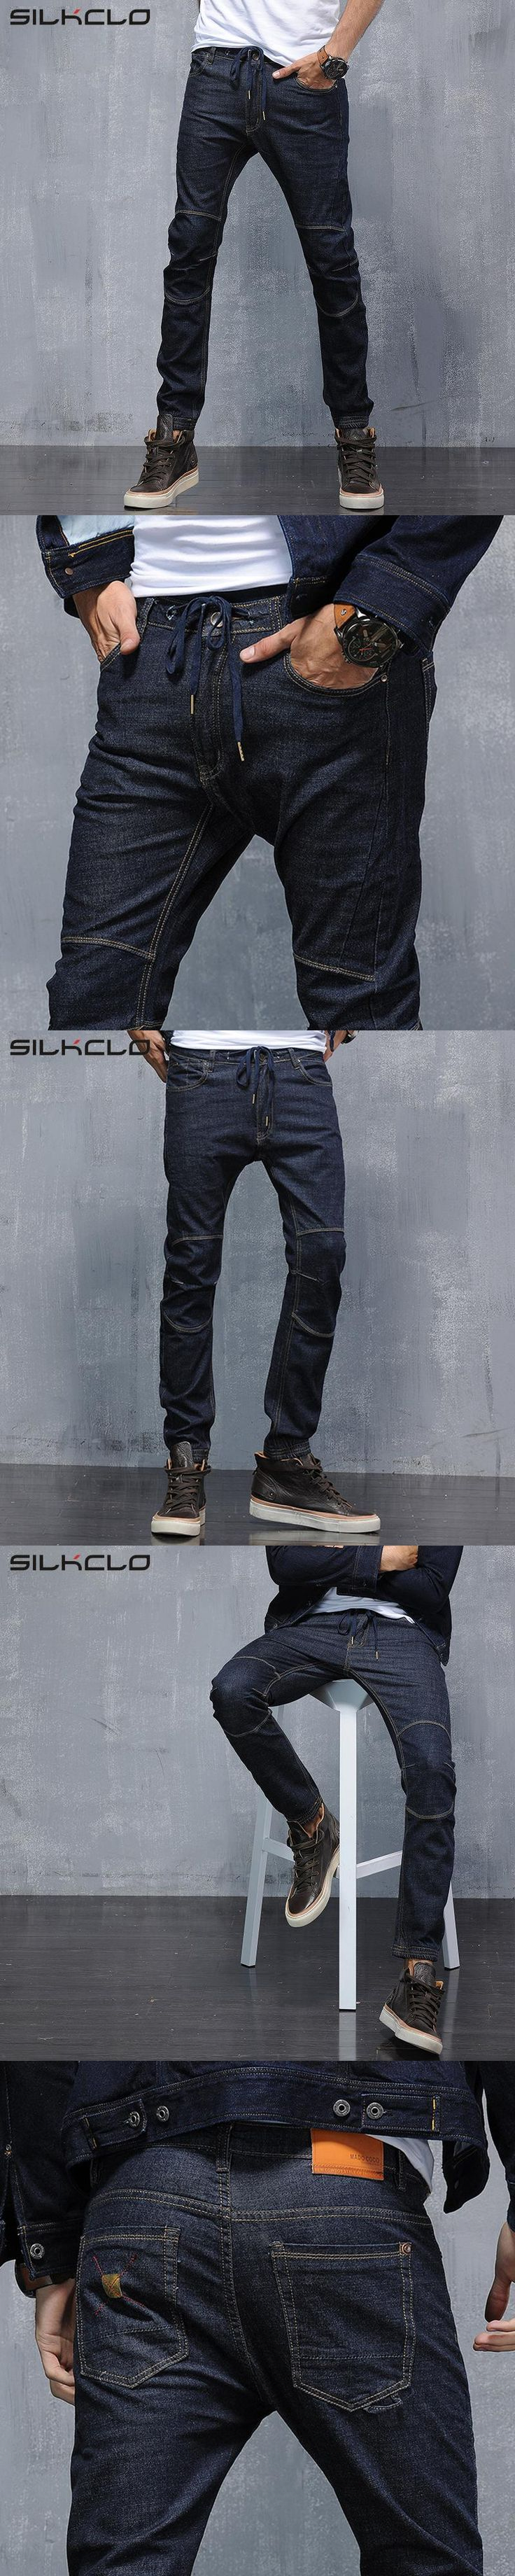 Brand clothing Autum 2016 Men's Modern Harem Jeans Slim Korean Style Pencil Pants For Youth Fashion Cross-Pants Plus Size 28-36